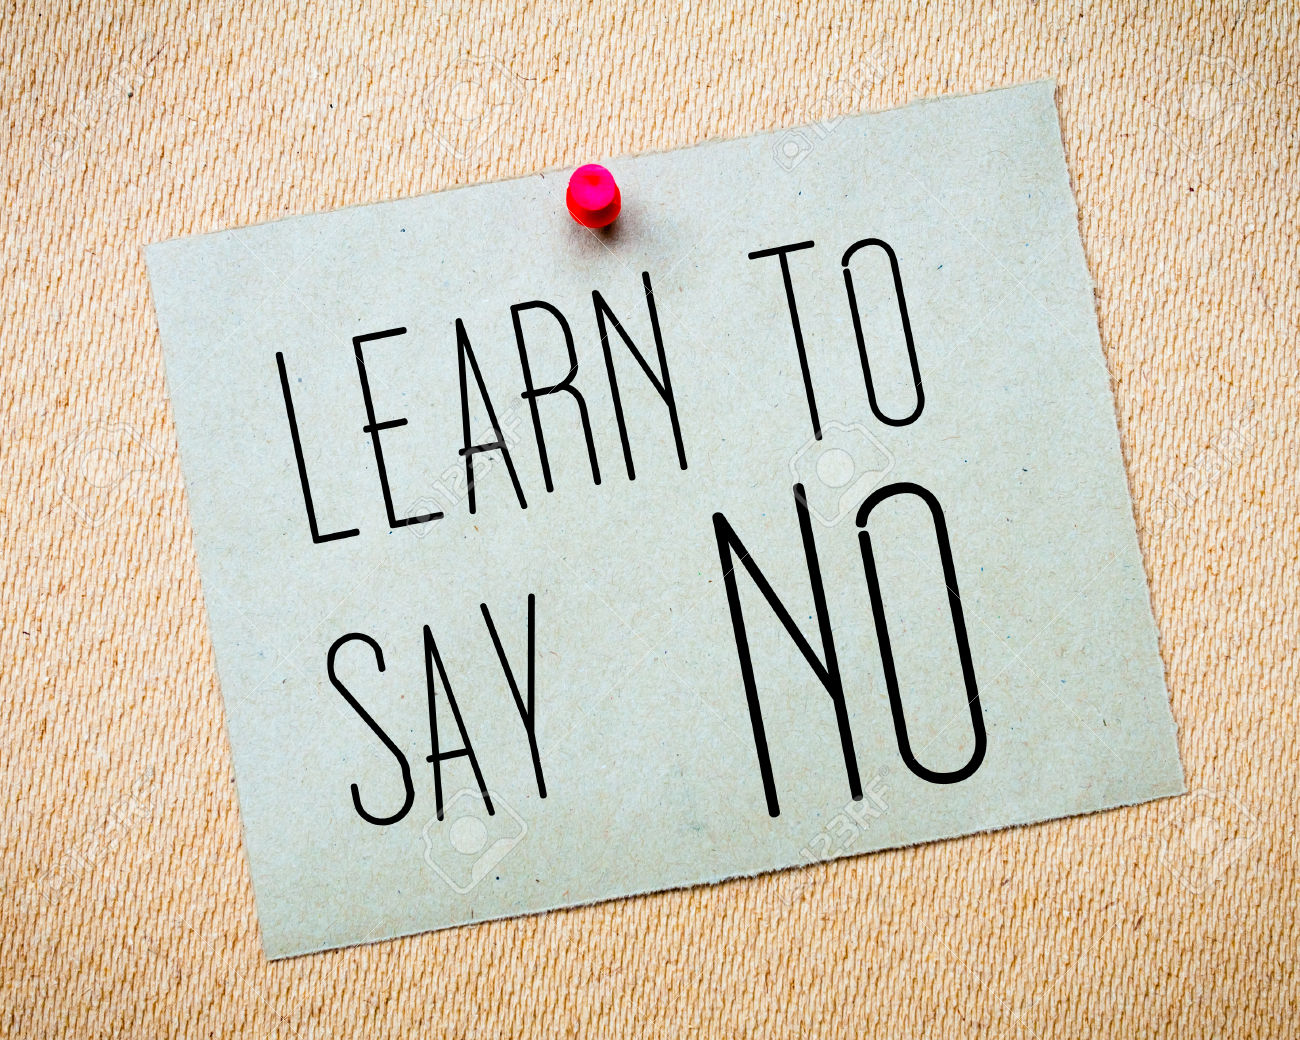 Recycled paper note pinned on cork board. Learn to say NO Message. Concept Image